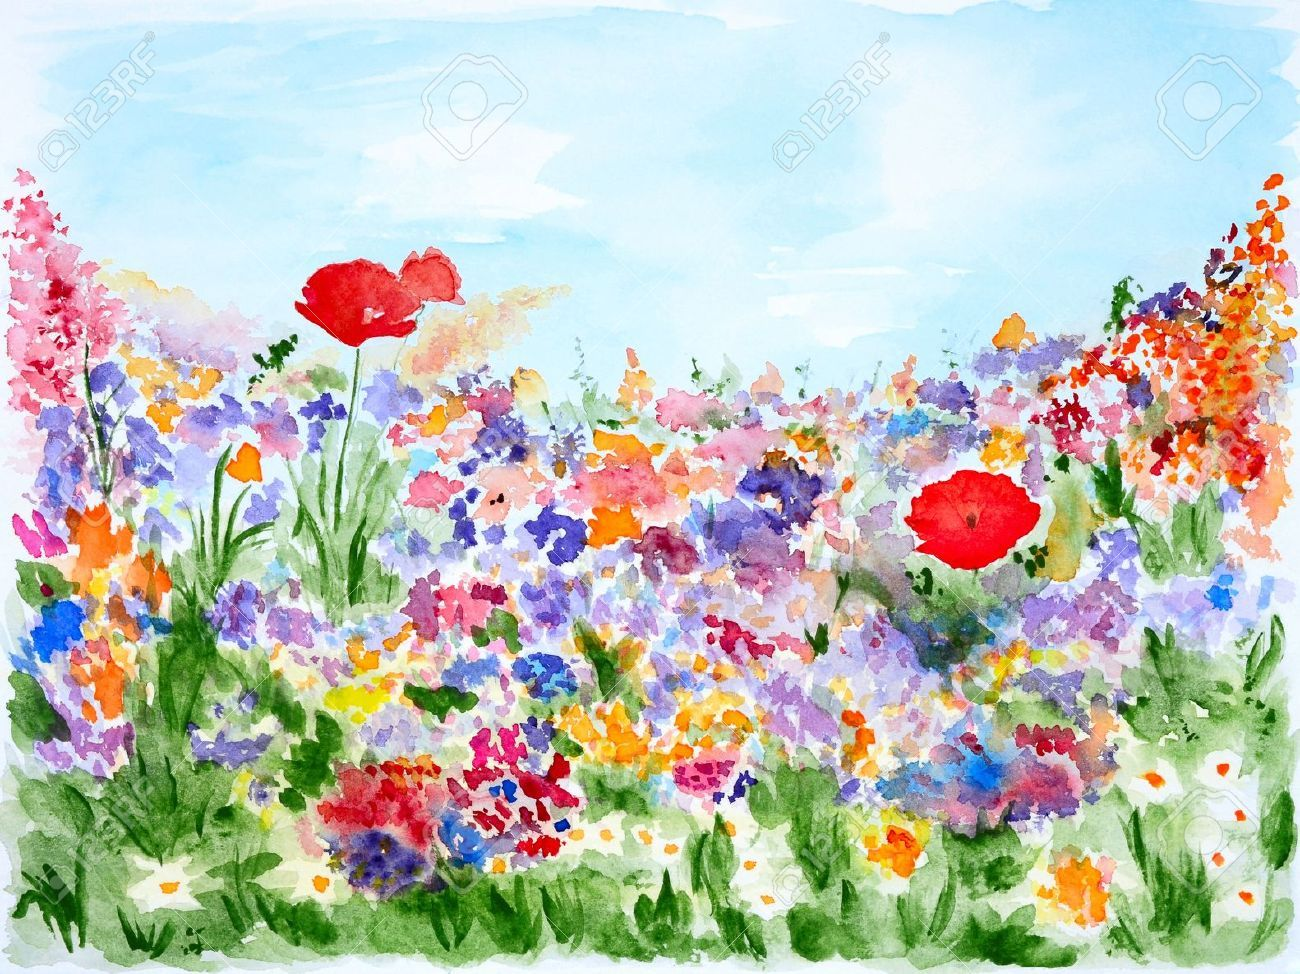 summer flowers in garden watercolor hand painted stock photo - Flower Garden Paintings